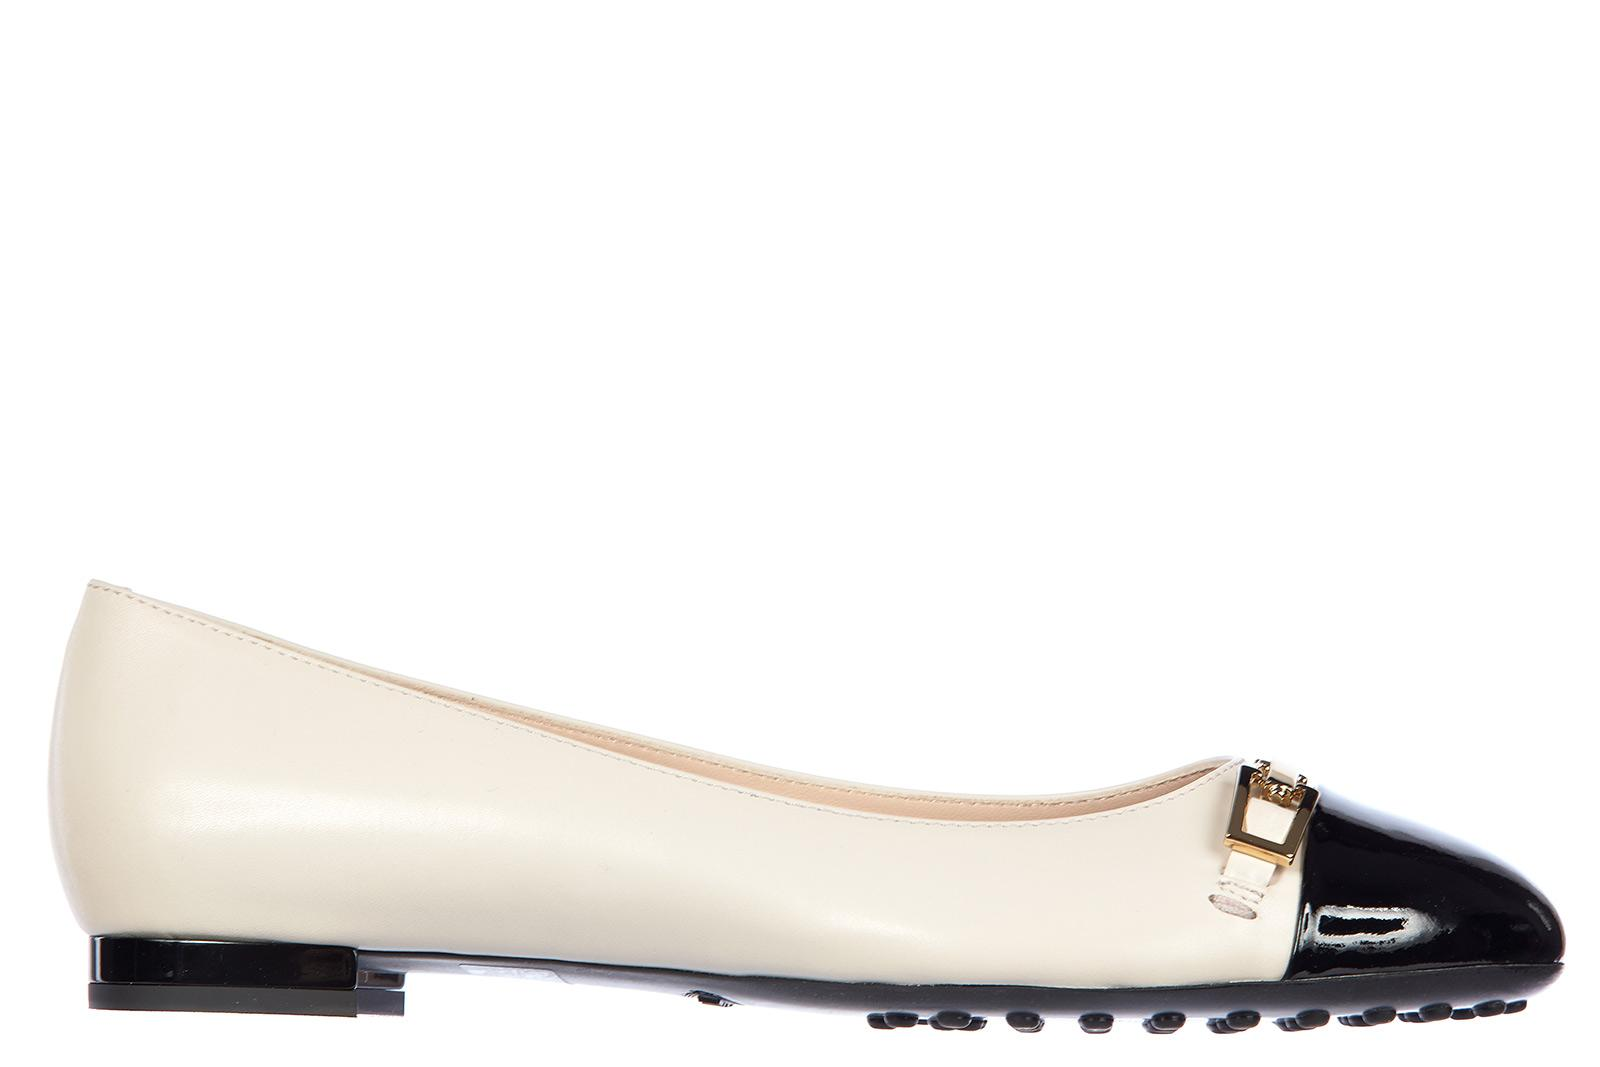 a11f3f8c02 Tod's Women's Leather Ballet Flats Ballerinas Clamp In Black | ModeSens